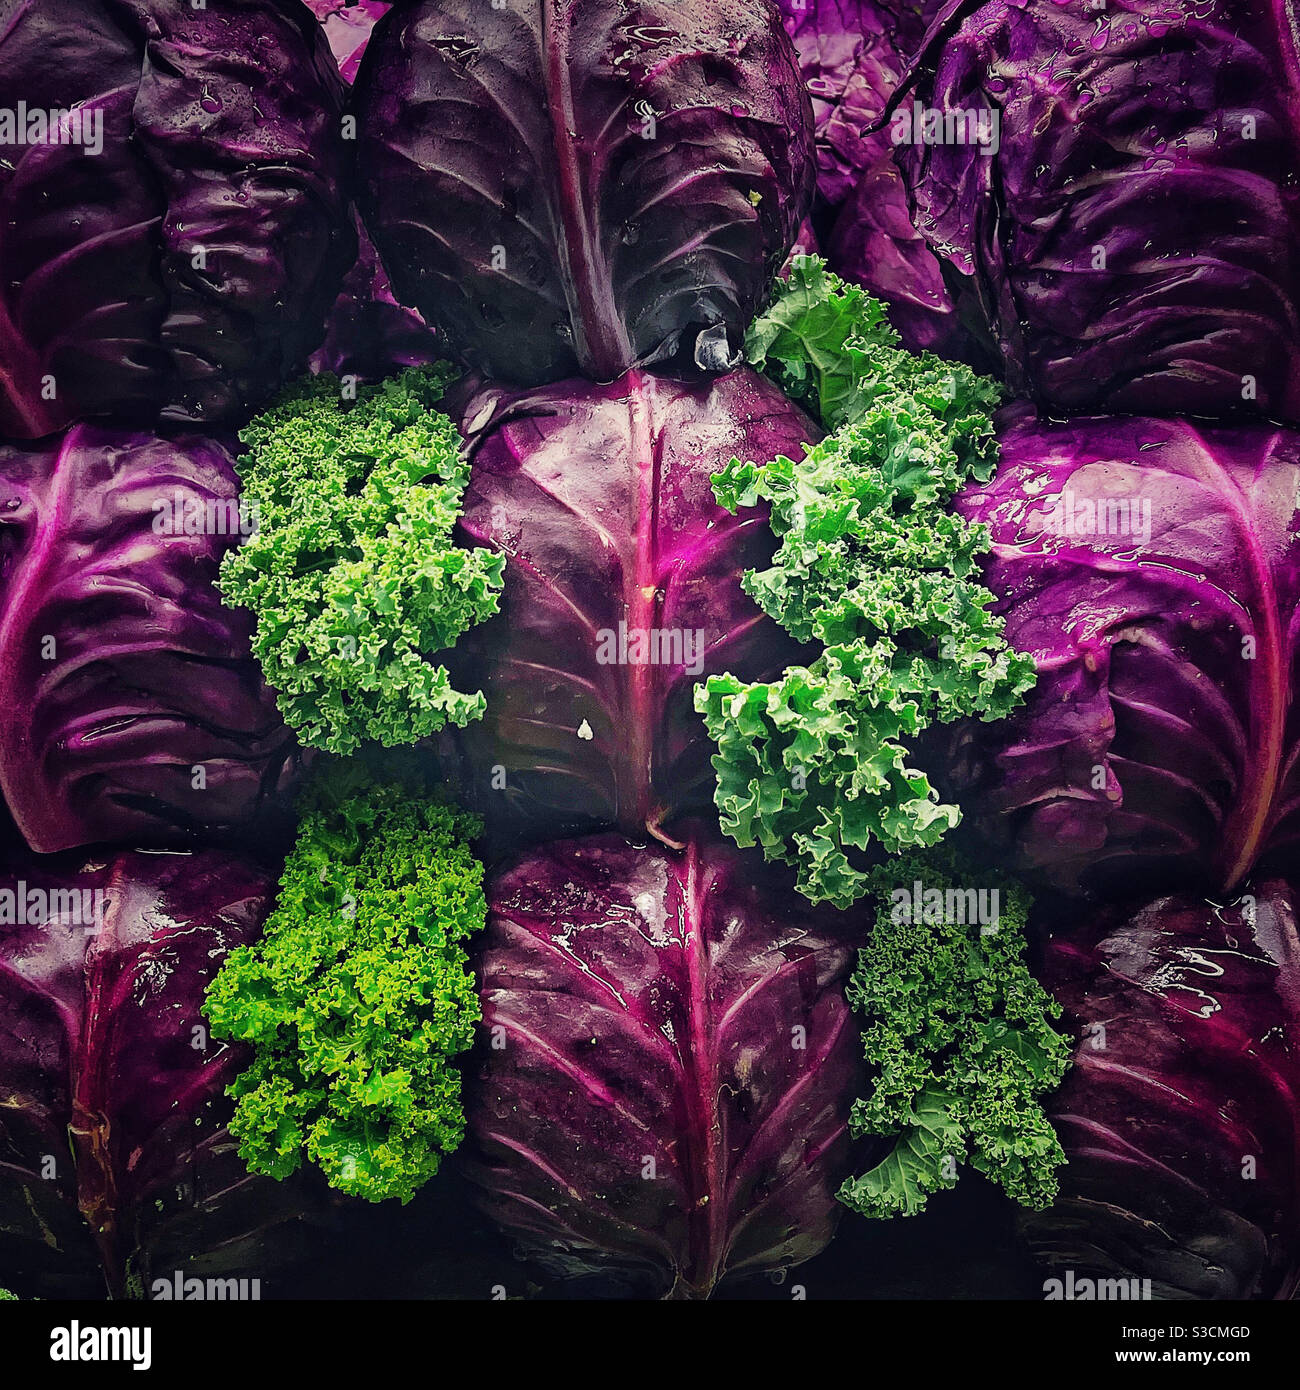 Kale and red cabbage on display Stock Photo